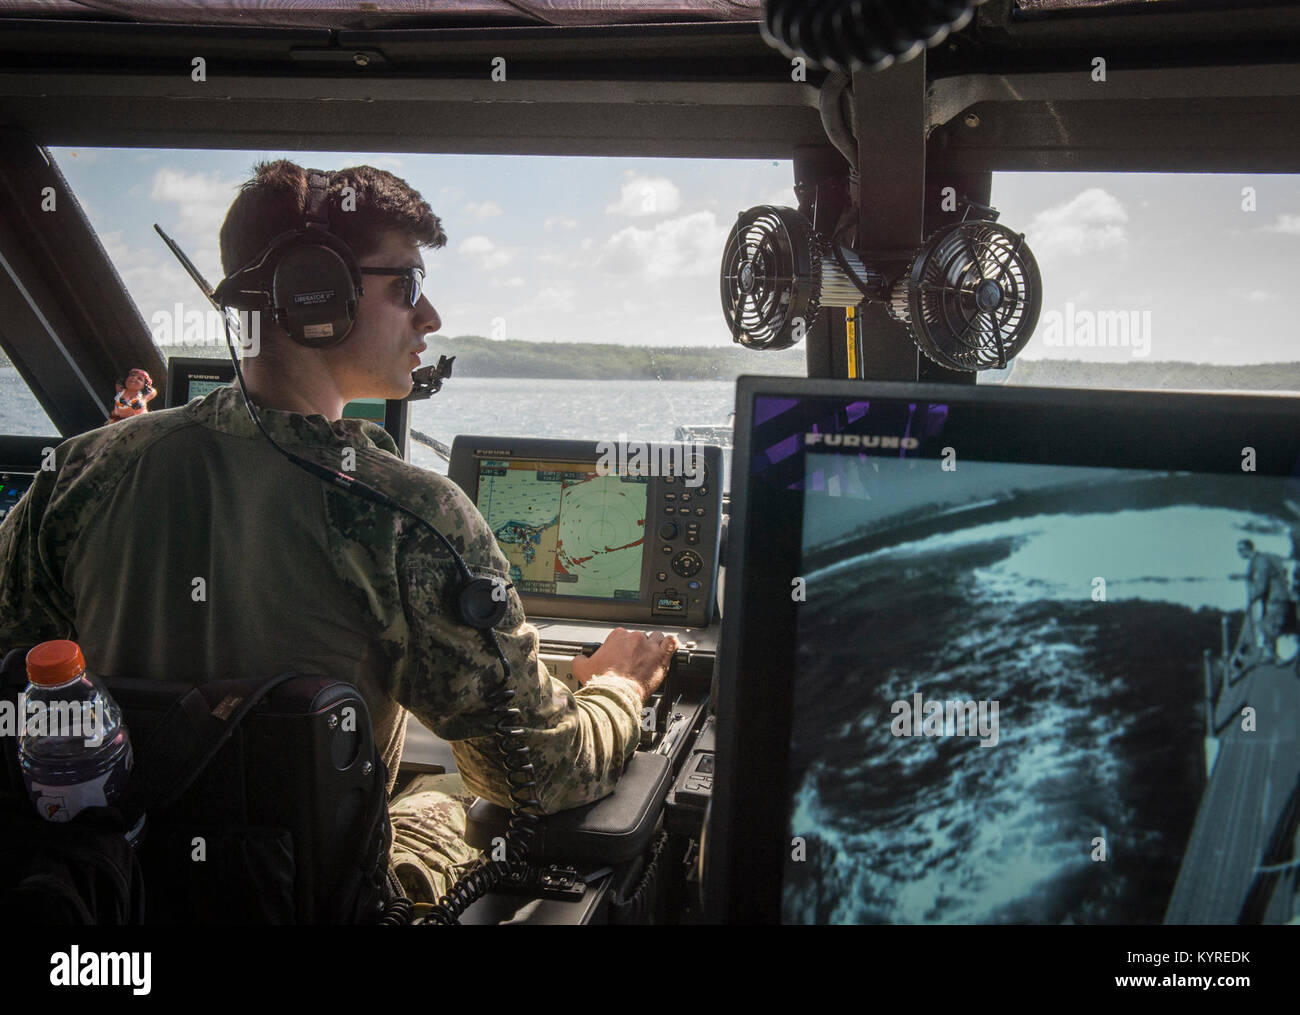 us navy quartermaster 3rd class zachary rice assigned to coastal riverine squadron crs 2 coxswains a mk vi patrol boat during training in support of